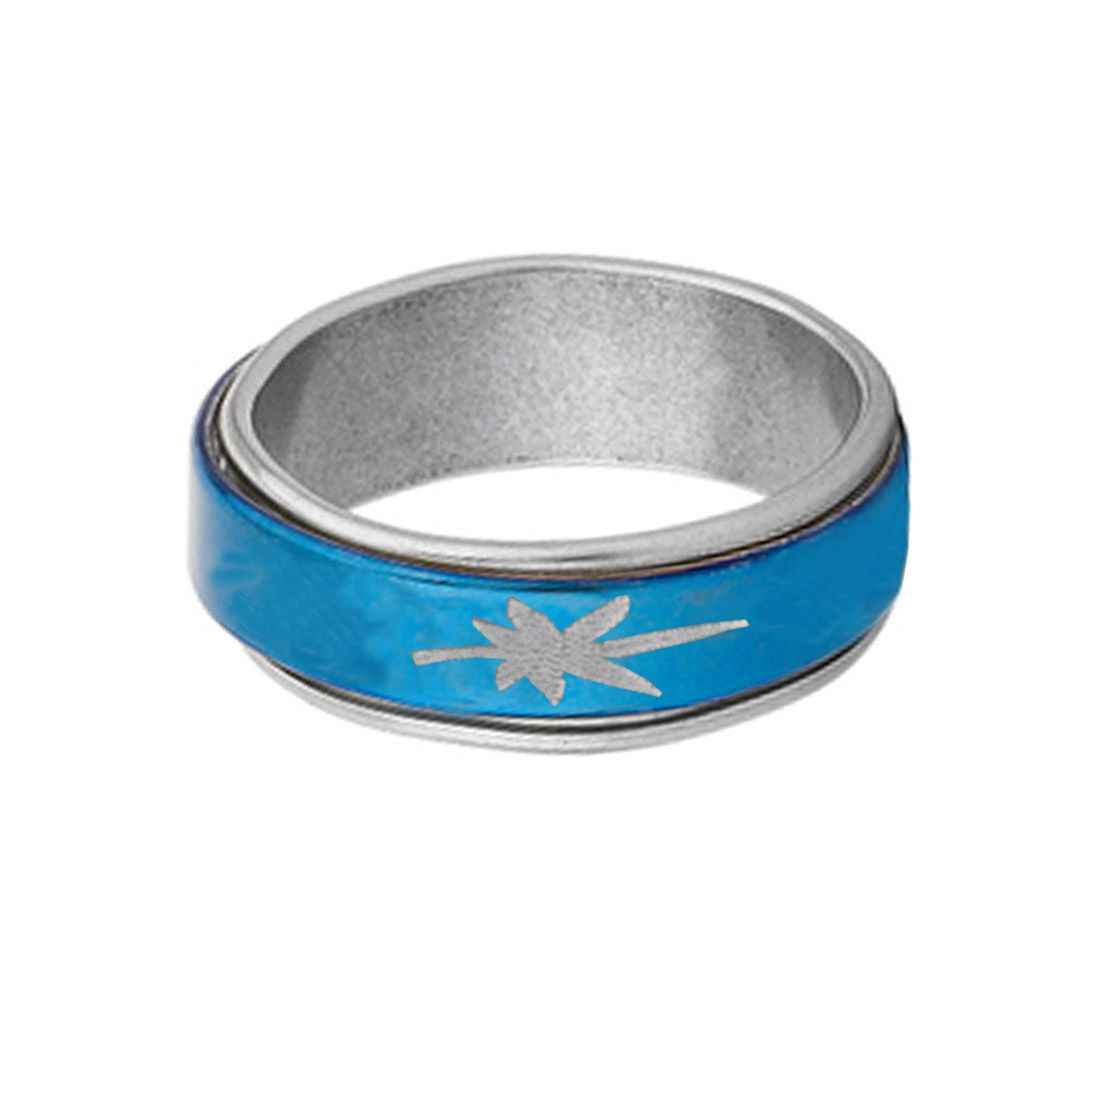 CLASSIC SILVER::BLUE LATEST DESIGN THUMB RING mens silver ring ...